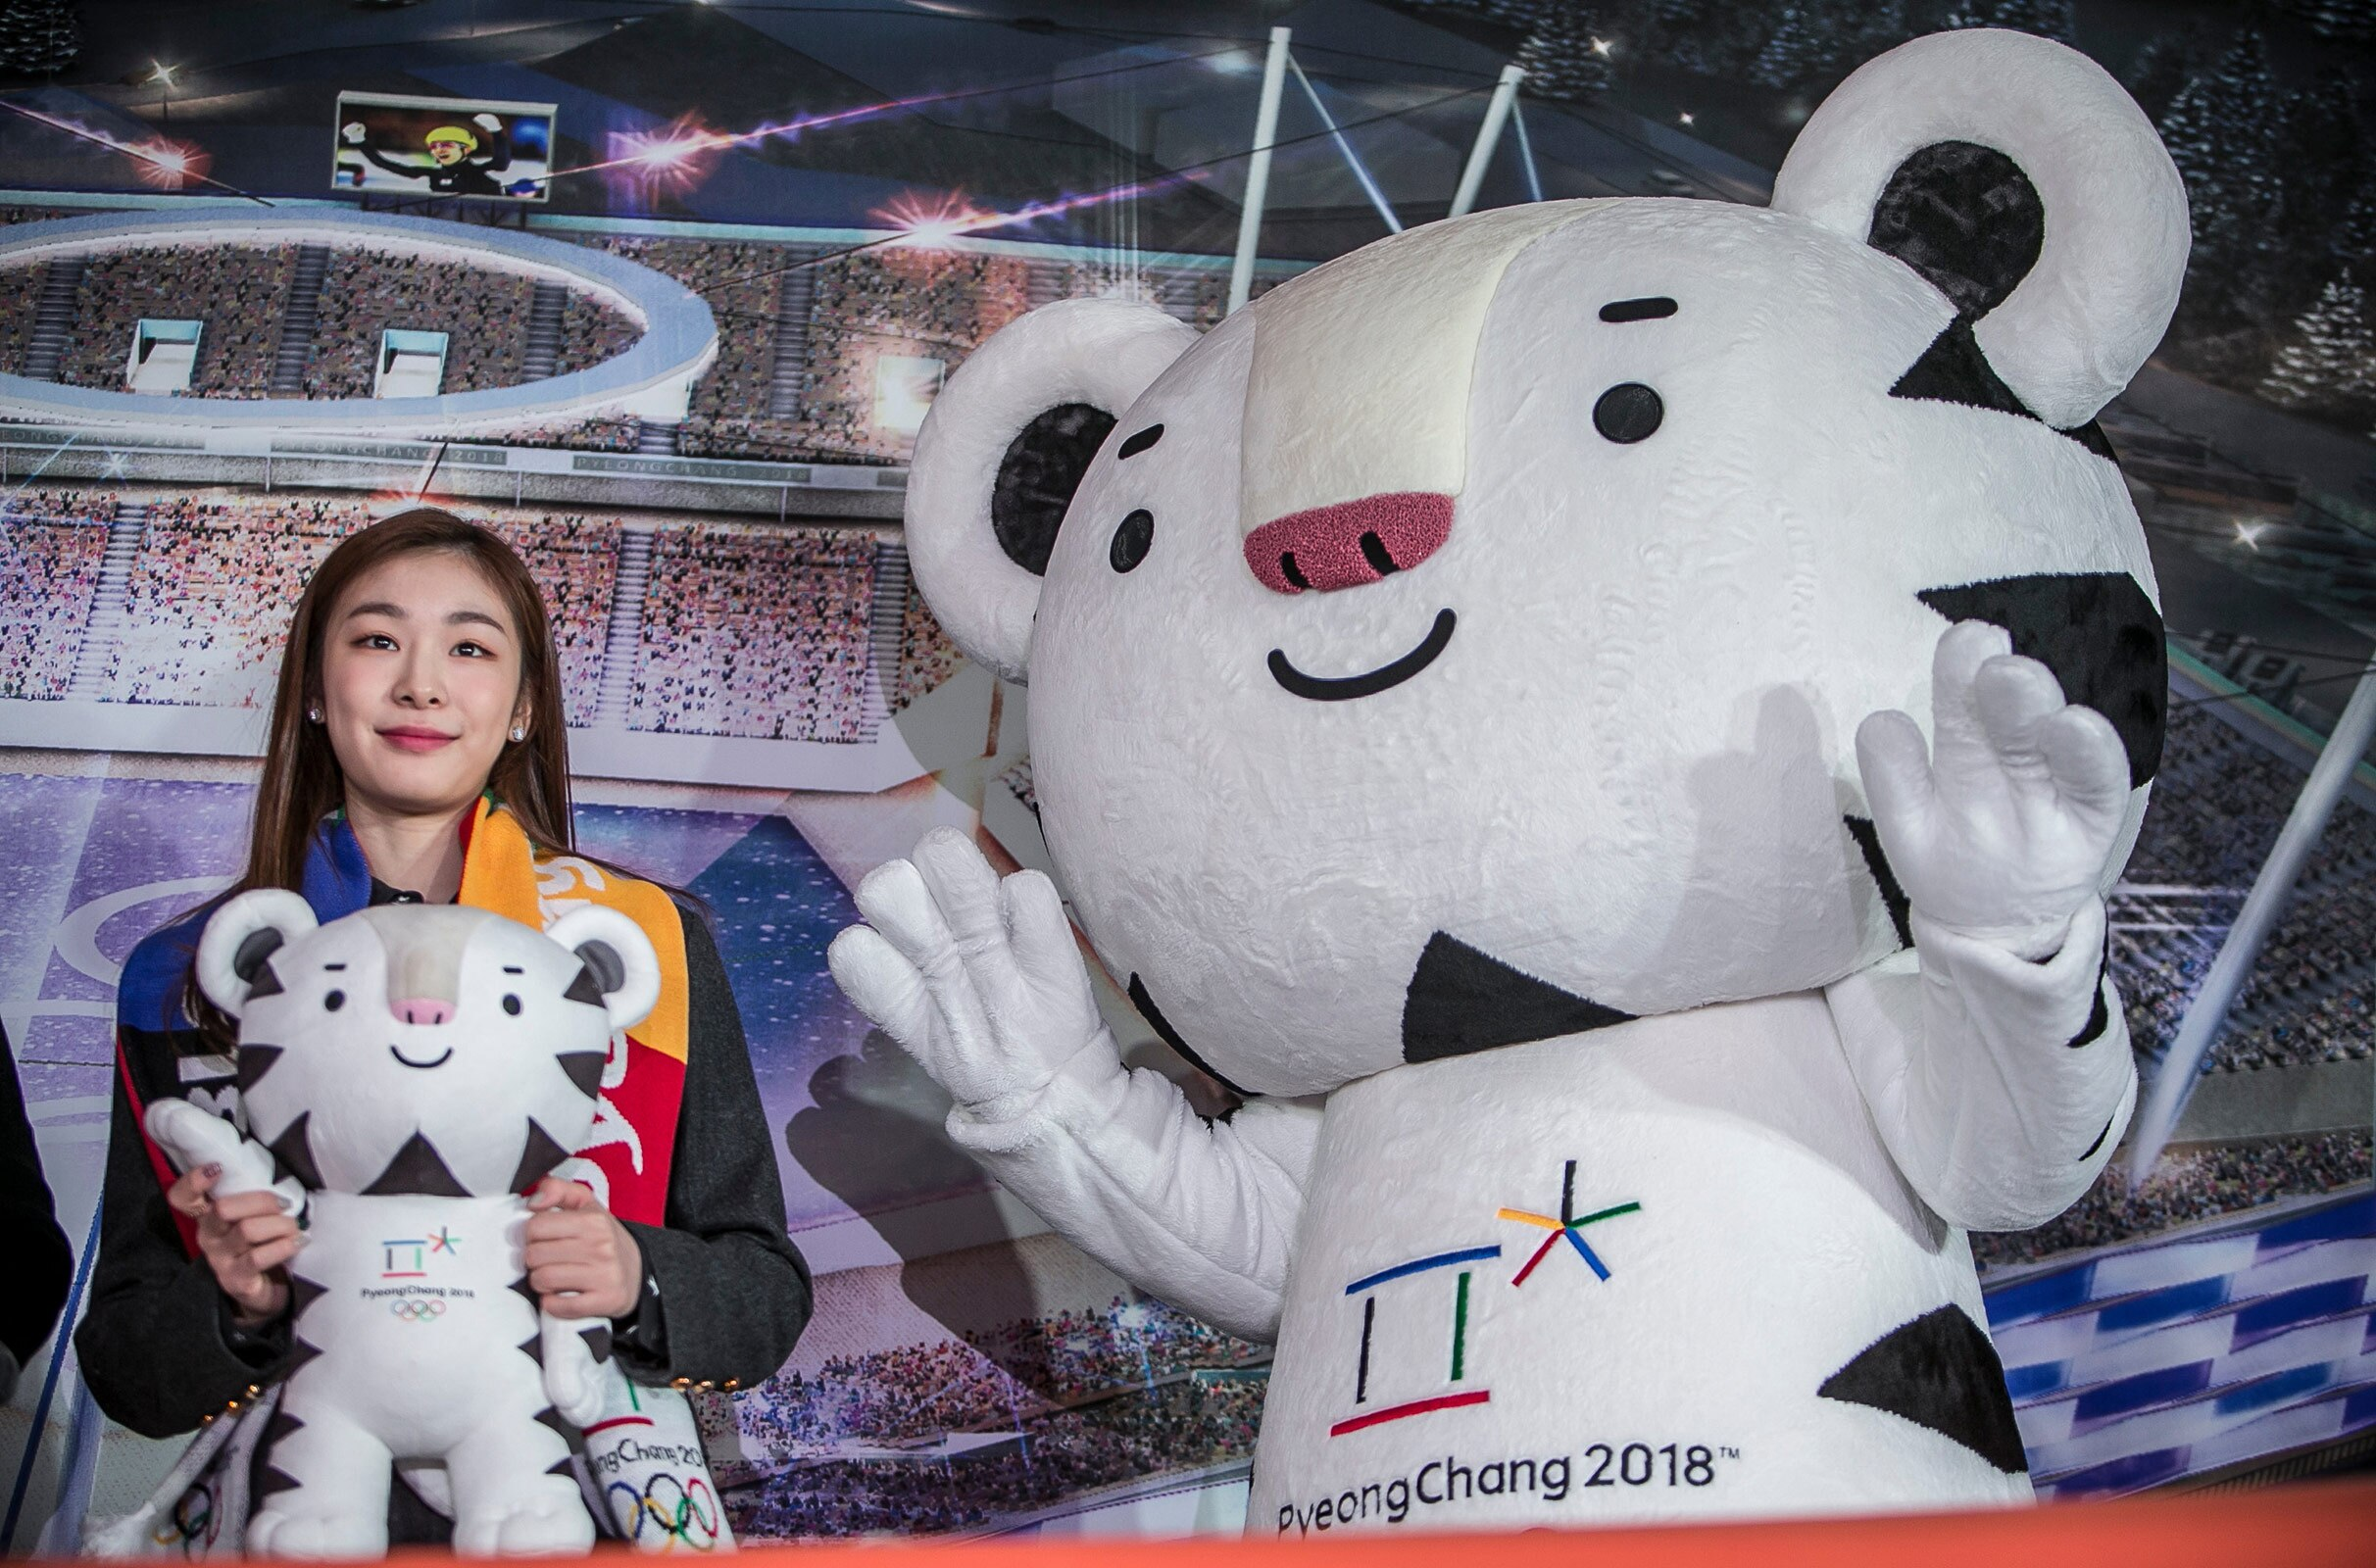 PyeongChang 2018 One Year to Go Event